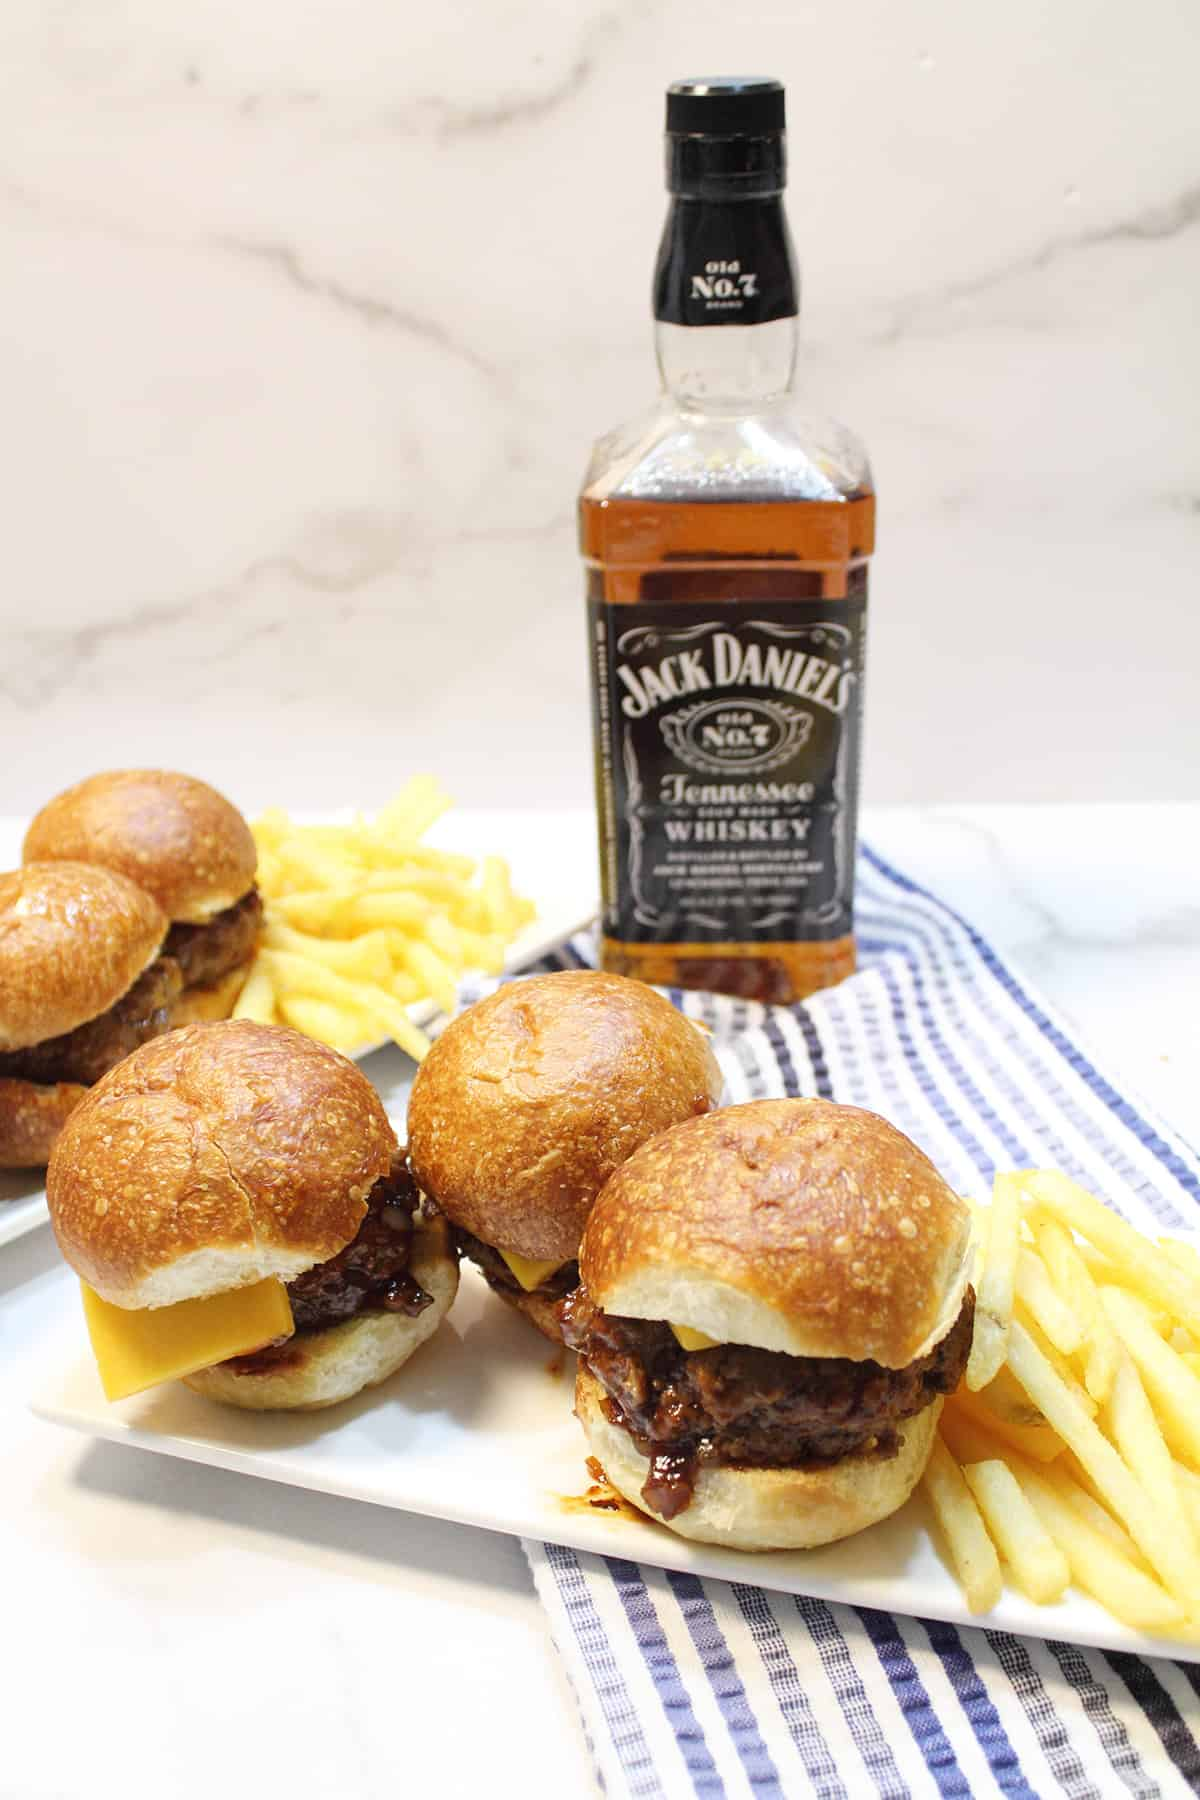 3 homemade sliders burgers on white plate with fries and whiskey bottle in background.